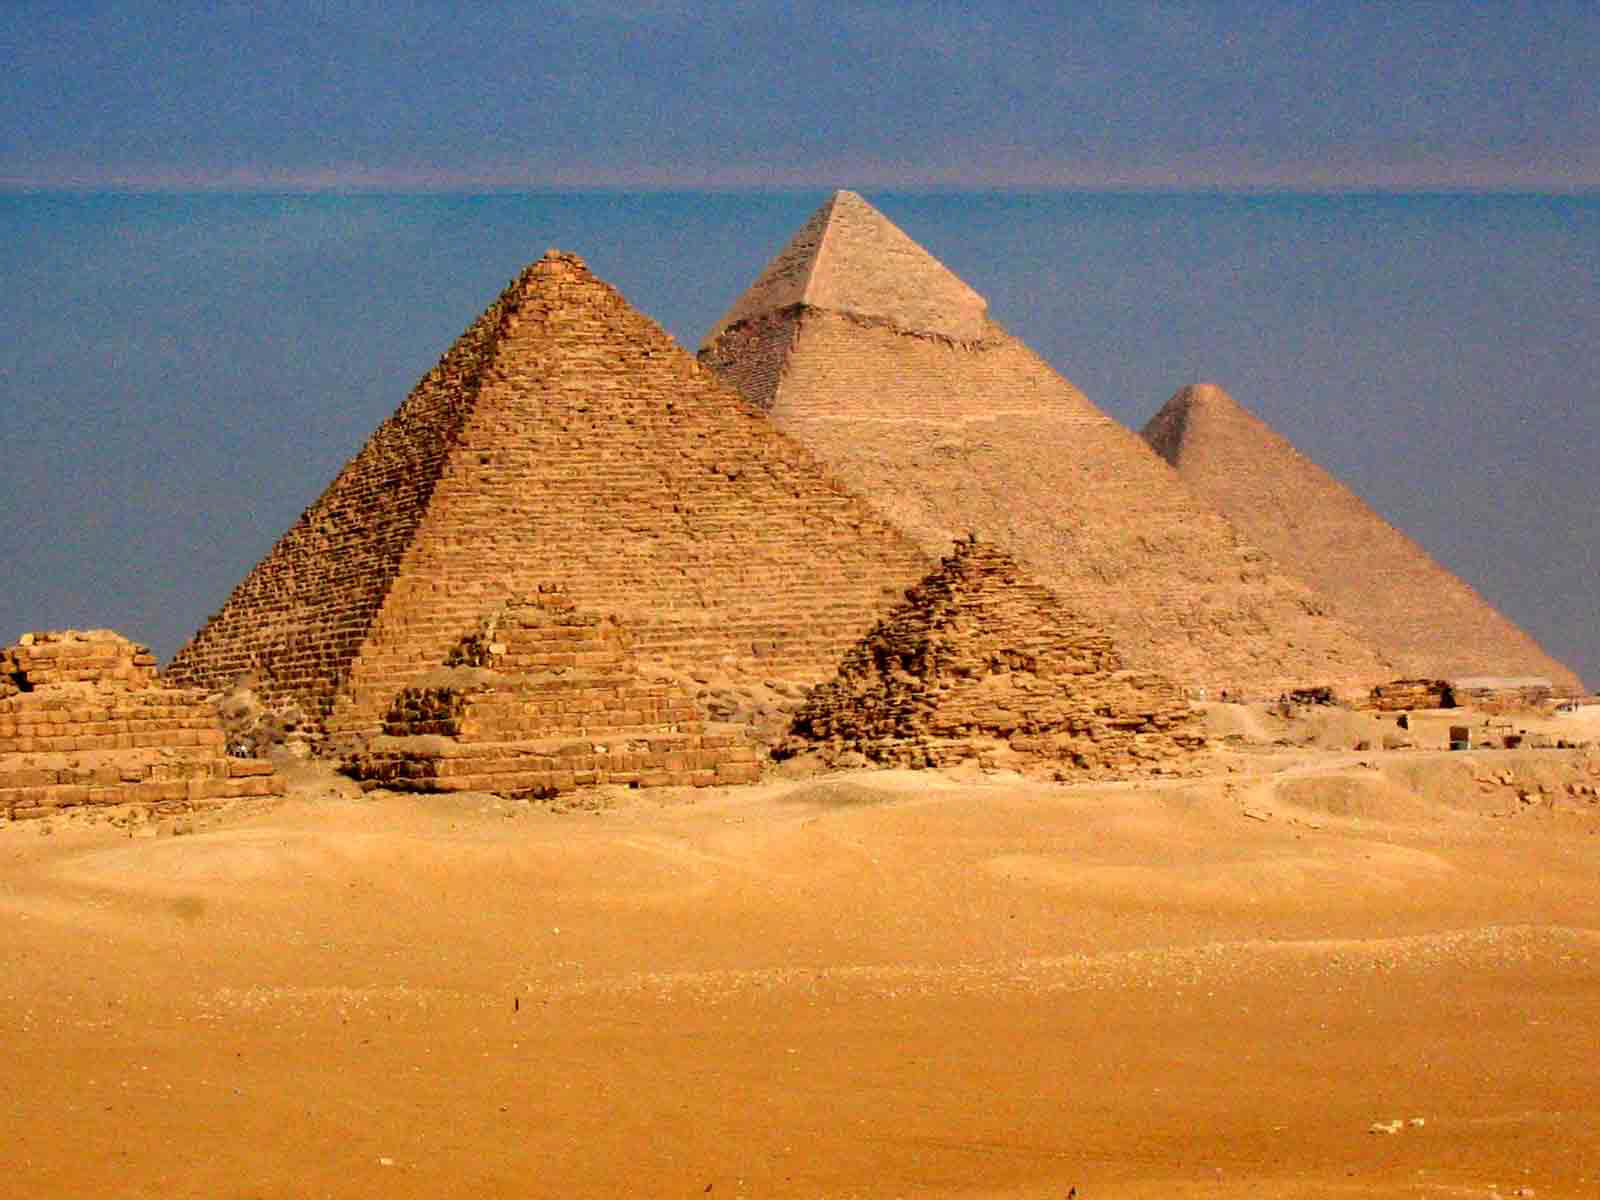 ancient egyptian architecture project egypt pyramids mummies